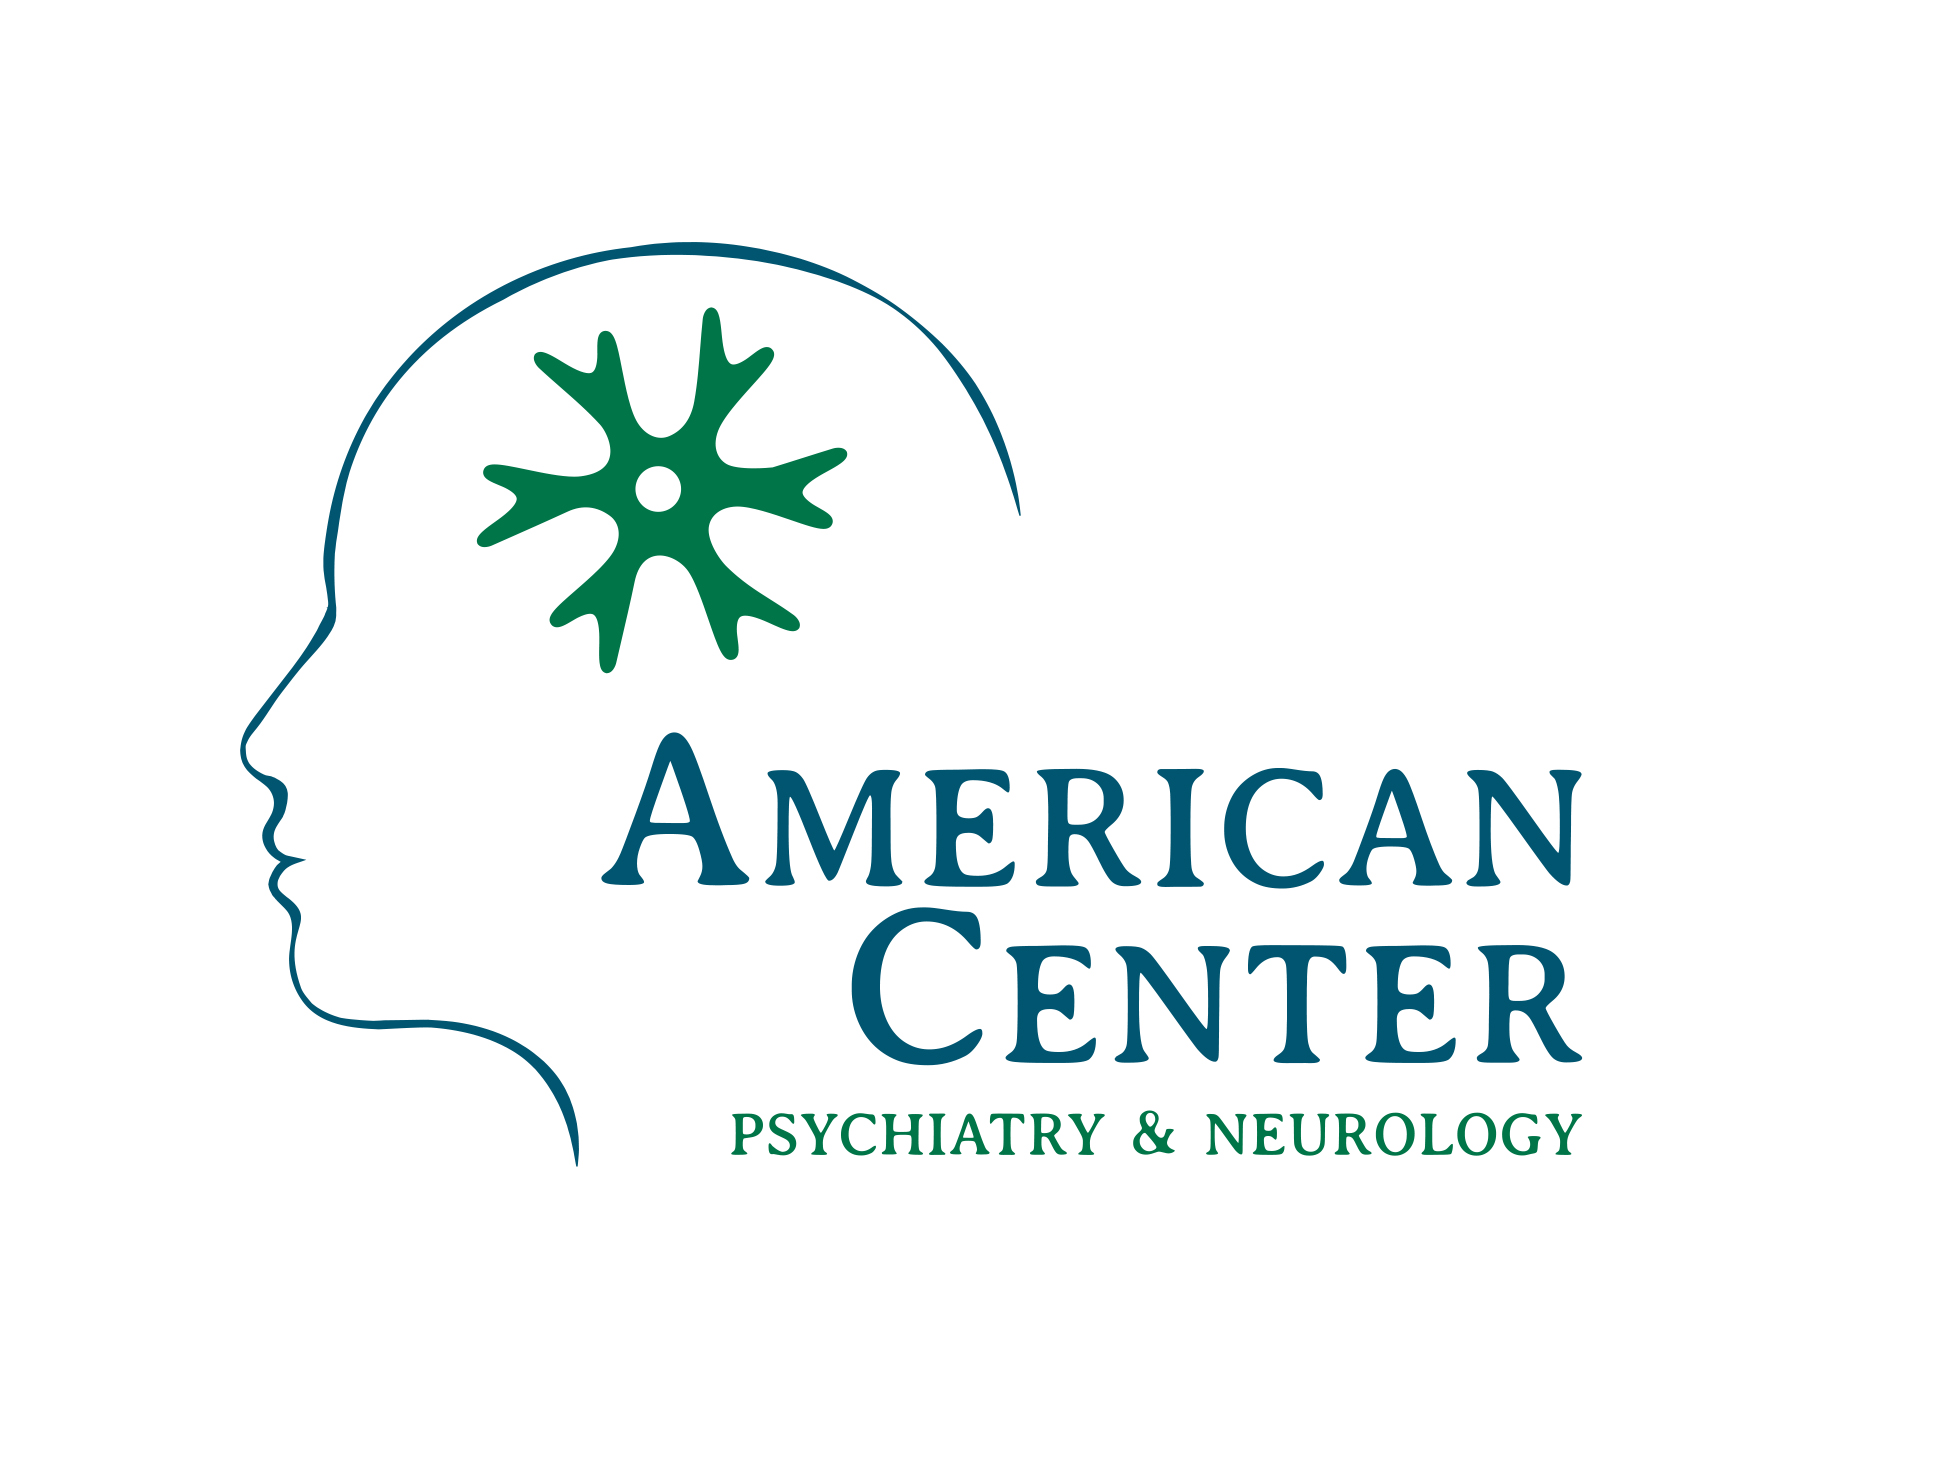 American Center for Psychiatry and Neurology - Dubai